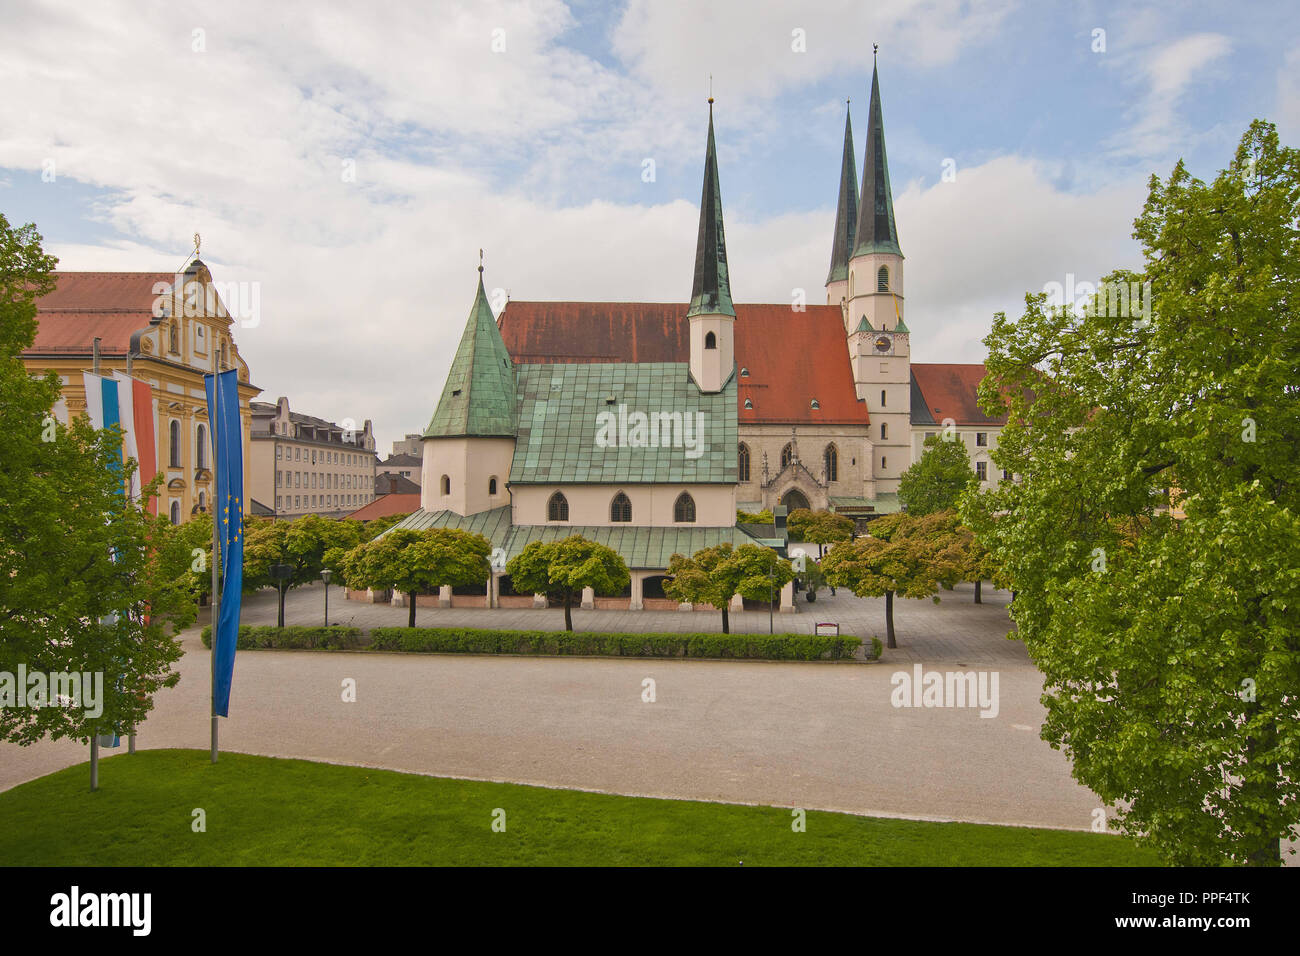 The Shrine of Our Lady of Altoetting (also known as the Chapel of Grace) on the Kapellplatz. The chapel houses the Black Madonna, which is highly revered by Pope Benedict XVI, Altoetting, Upper Bavaria, Bavaria, Germany. - Stock Image